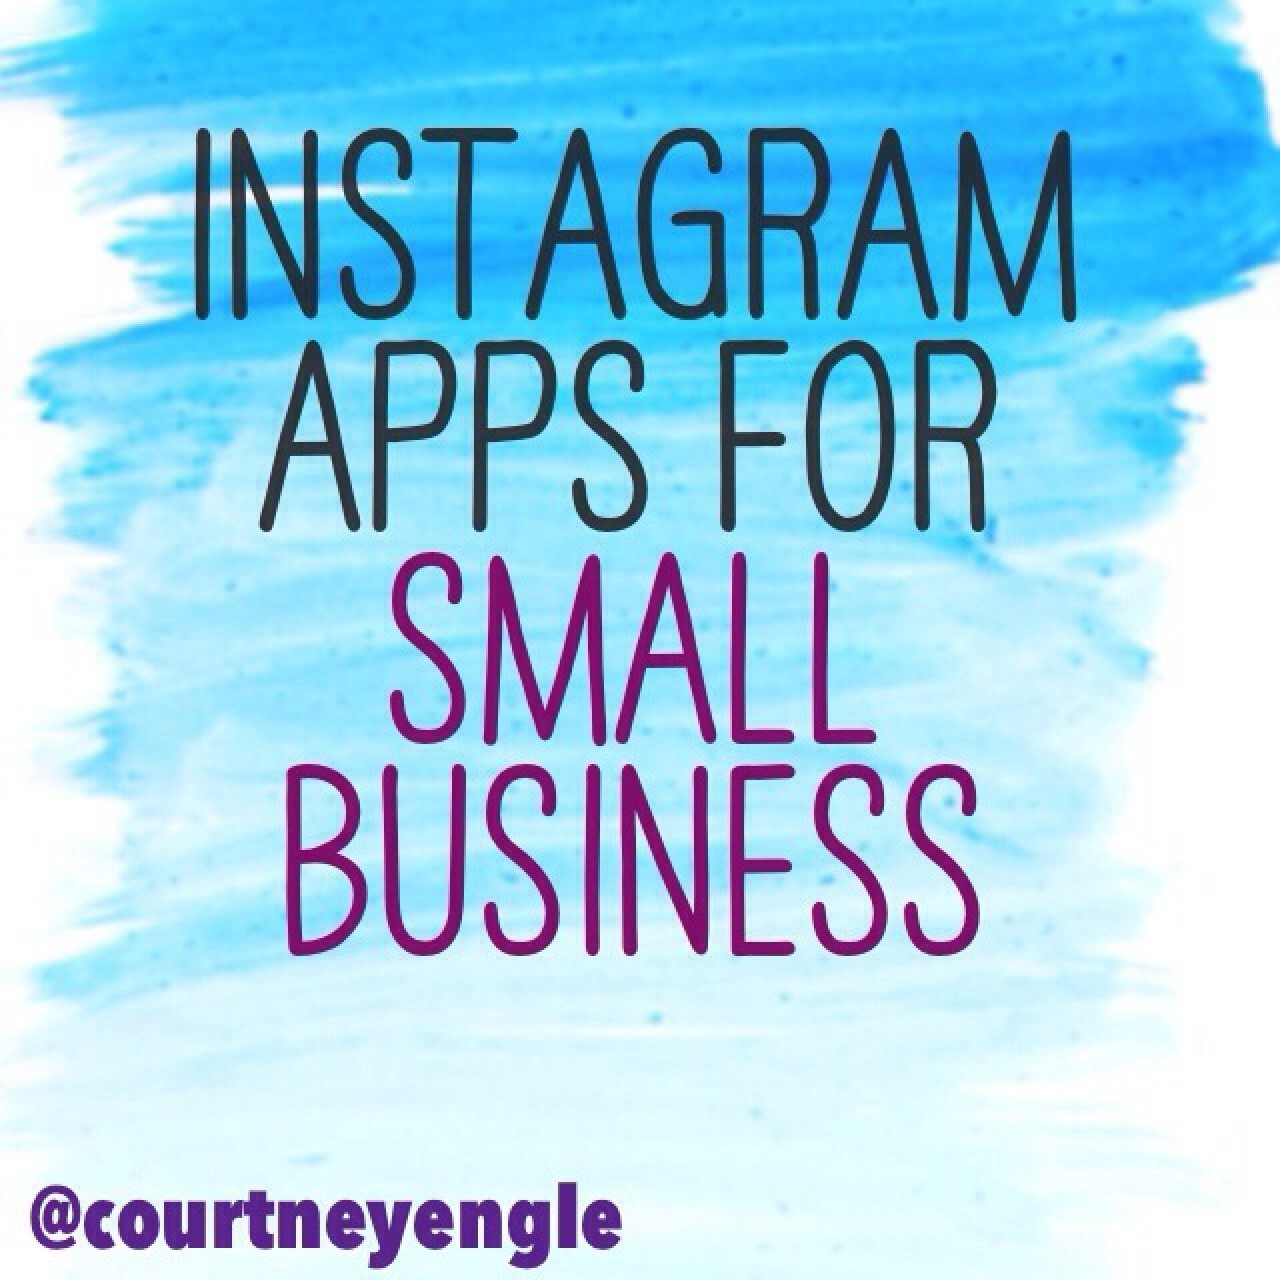 Instagram Apps for Small Business